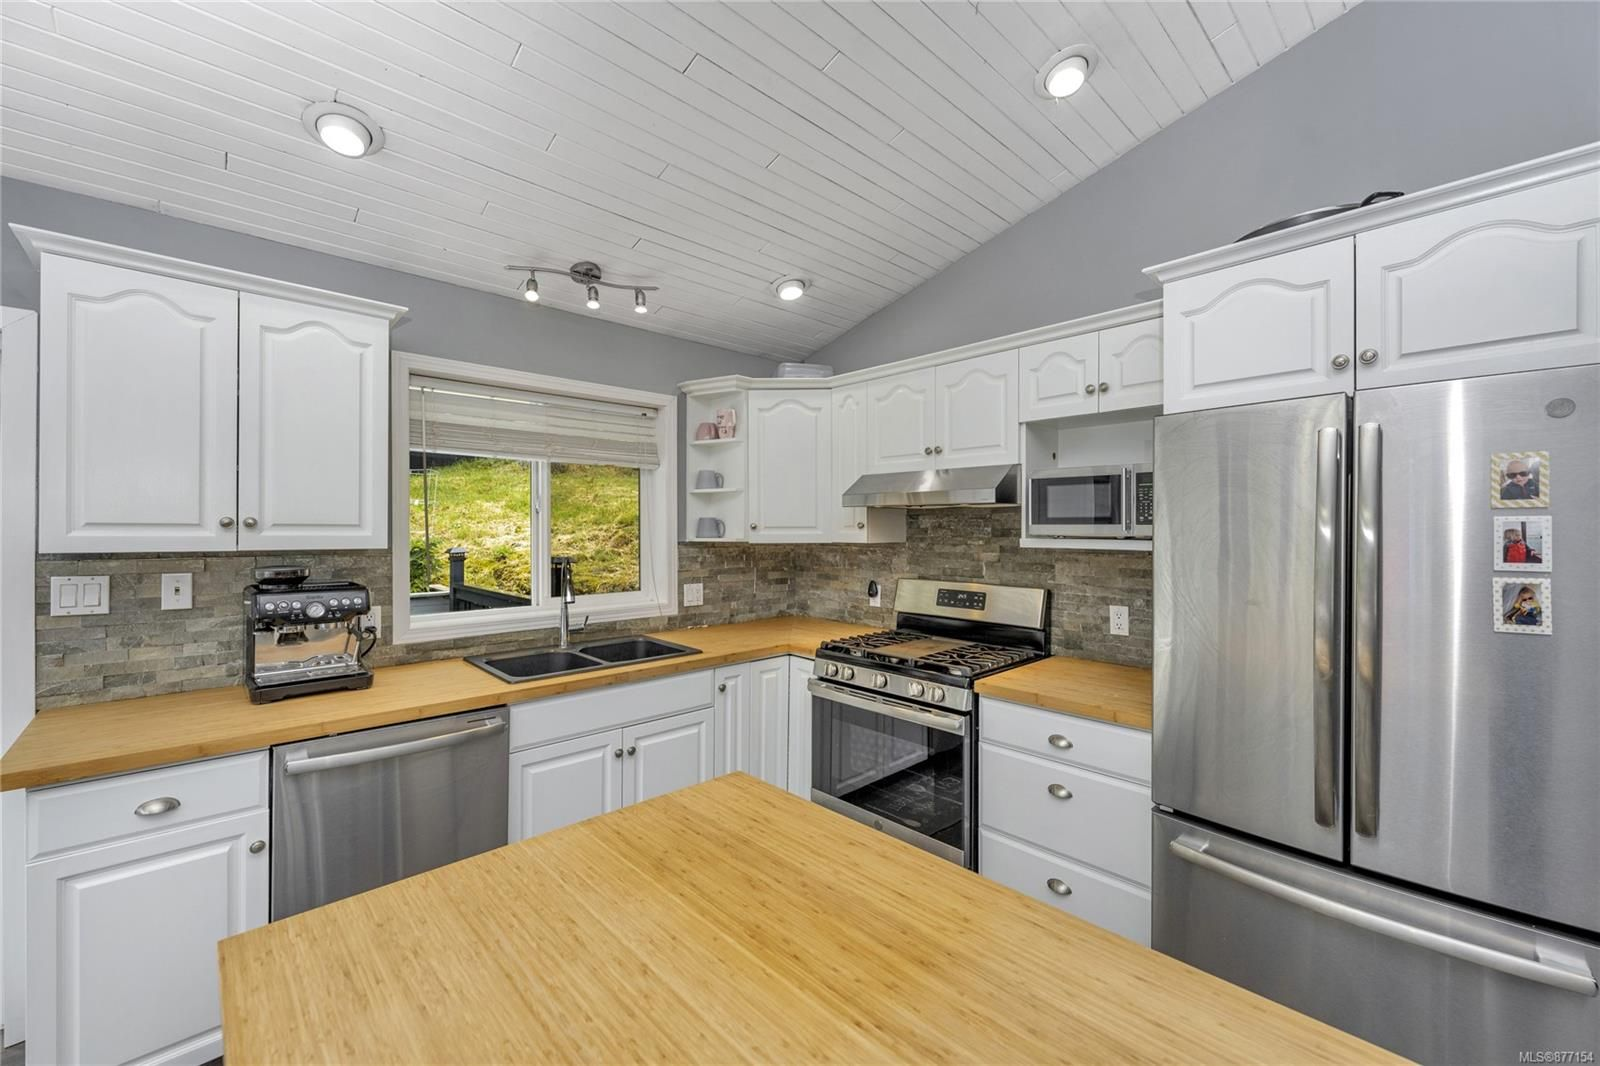 Photo 7: Photos: 2376 Terrace Rd in : ML Shawnigan House for sale (Malahat & Area)  : MLS®# 877154